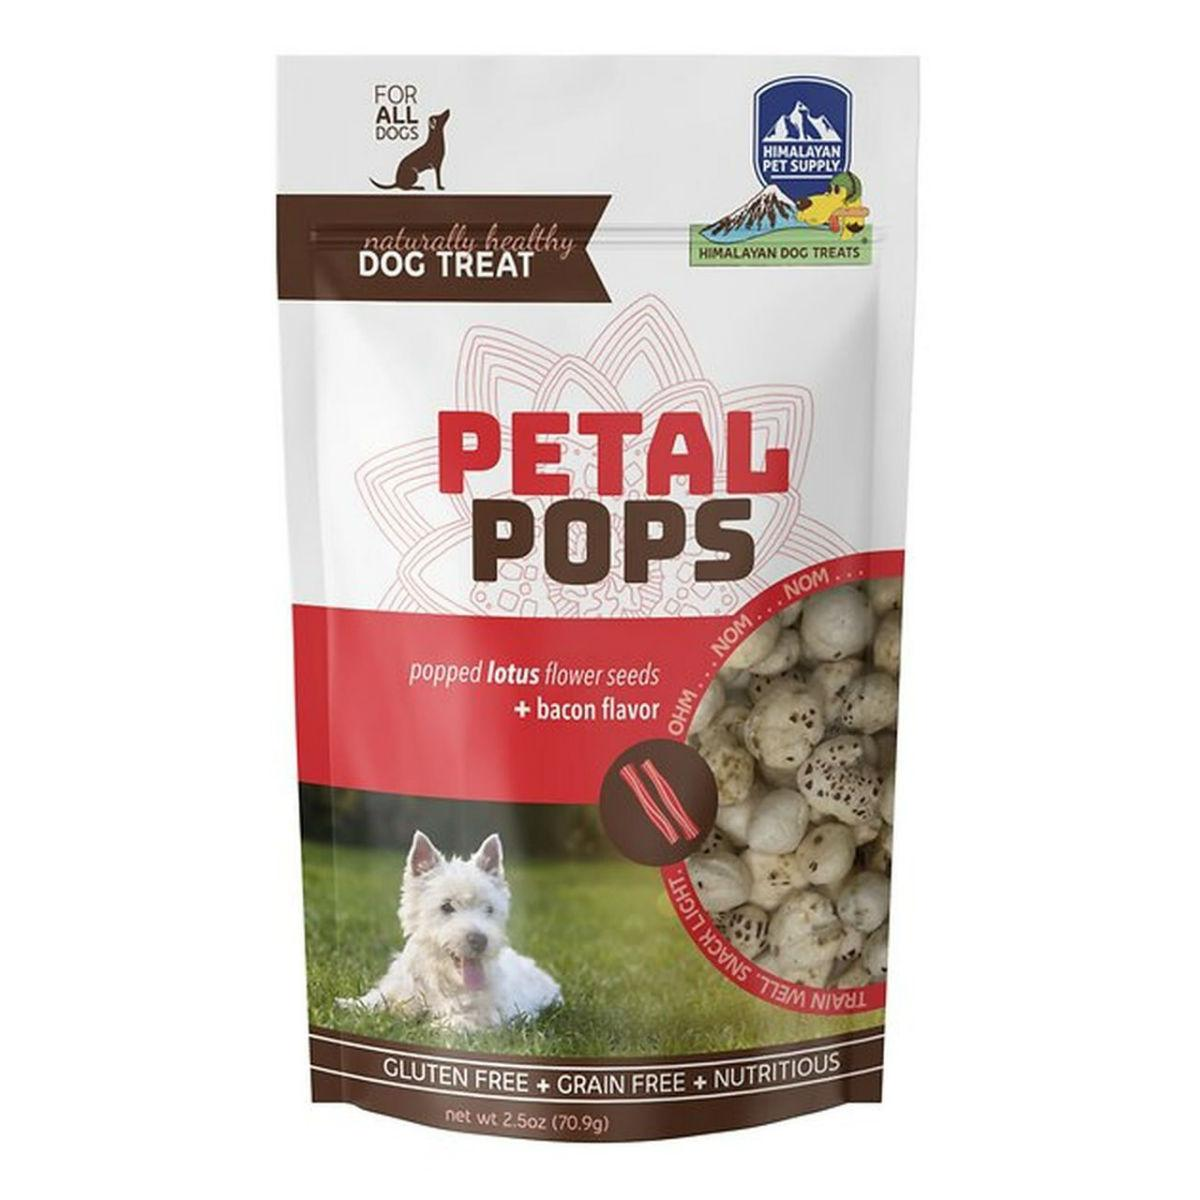 Himalayan Petal Pops Dog Treat - Bacon